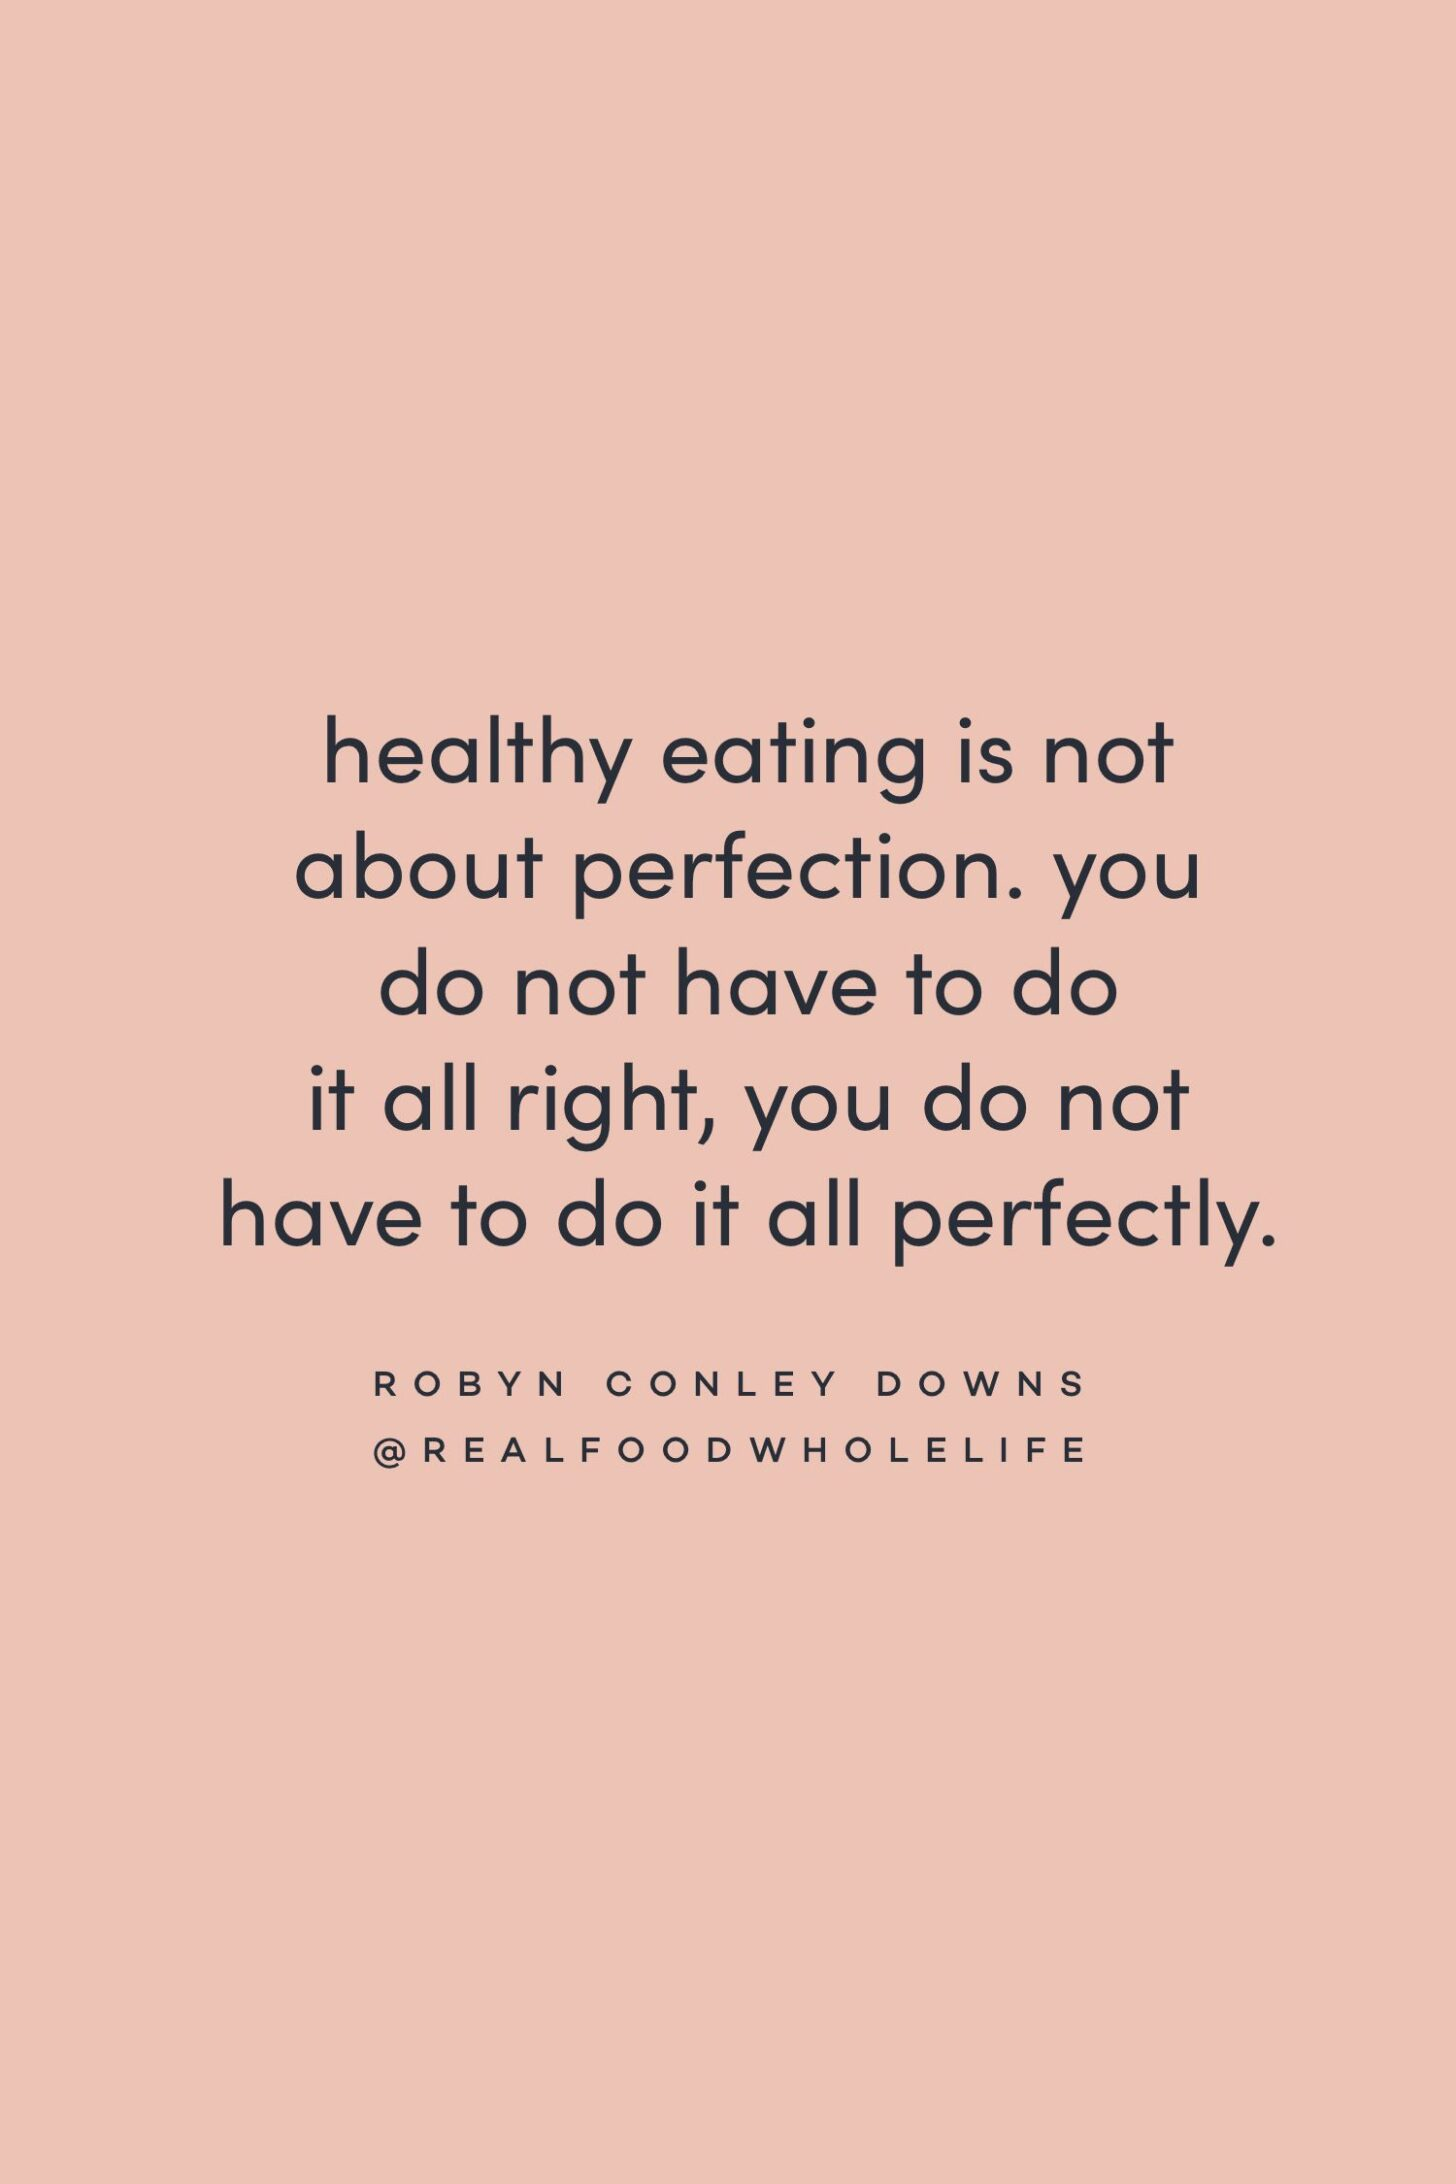 Quote on healthy eating and perfection by Robyn Conley Downs on the Feel Good Effect Podcast #realfoodwholelife #feelgoodeffectpodcast #motivationalquote #positivityquote #inspirationalquote #selfacceptancequote #selflovequote #healthyeatingquote #perfectionismquote